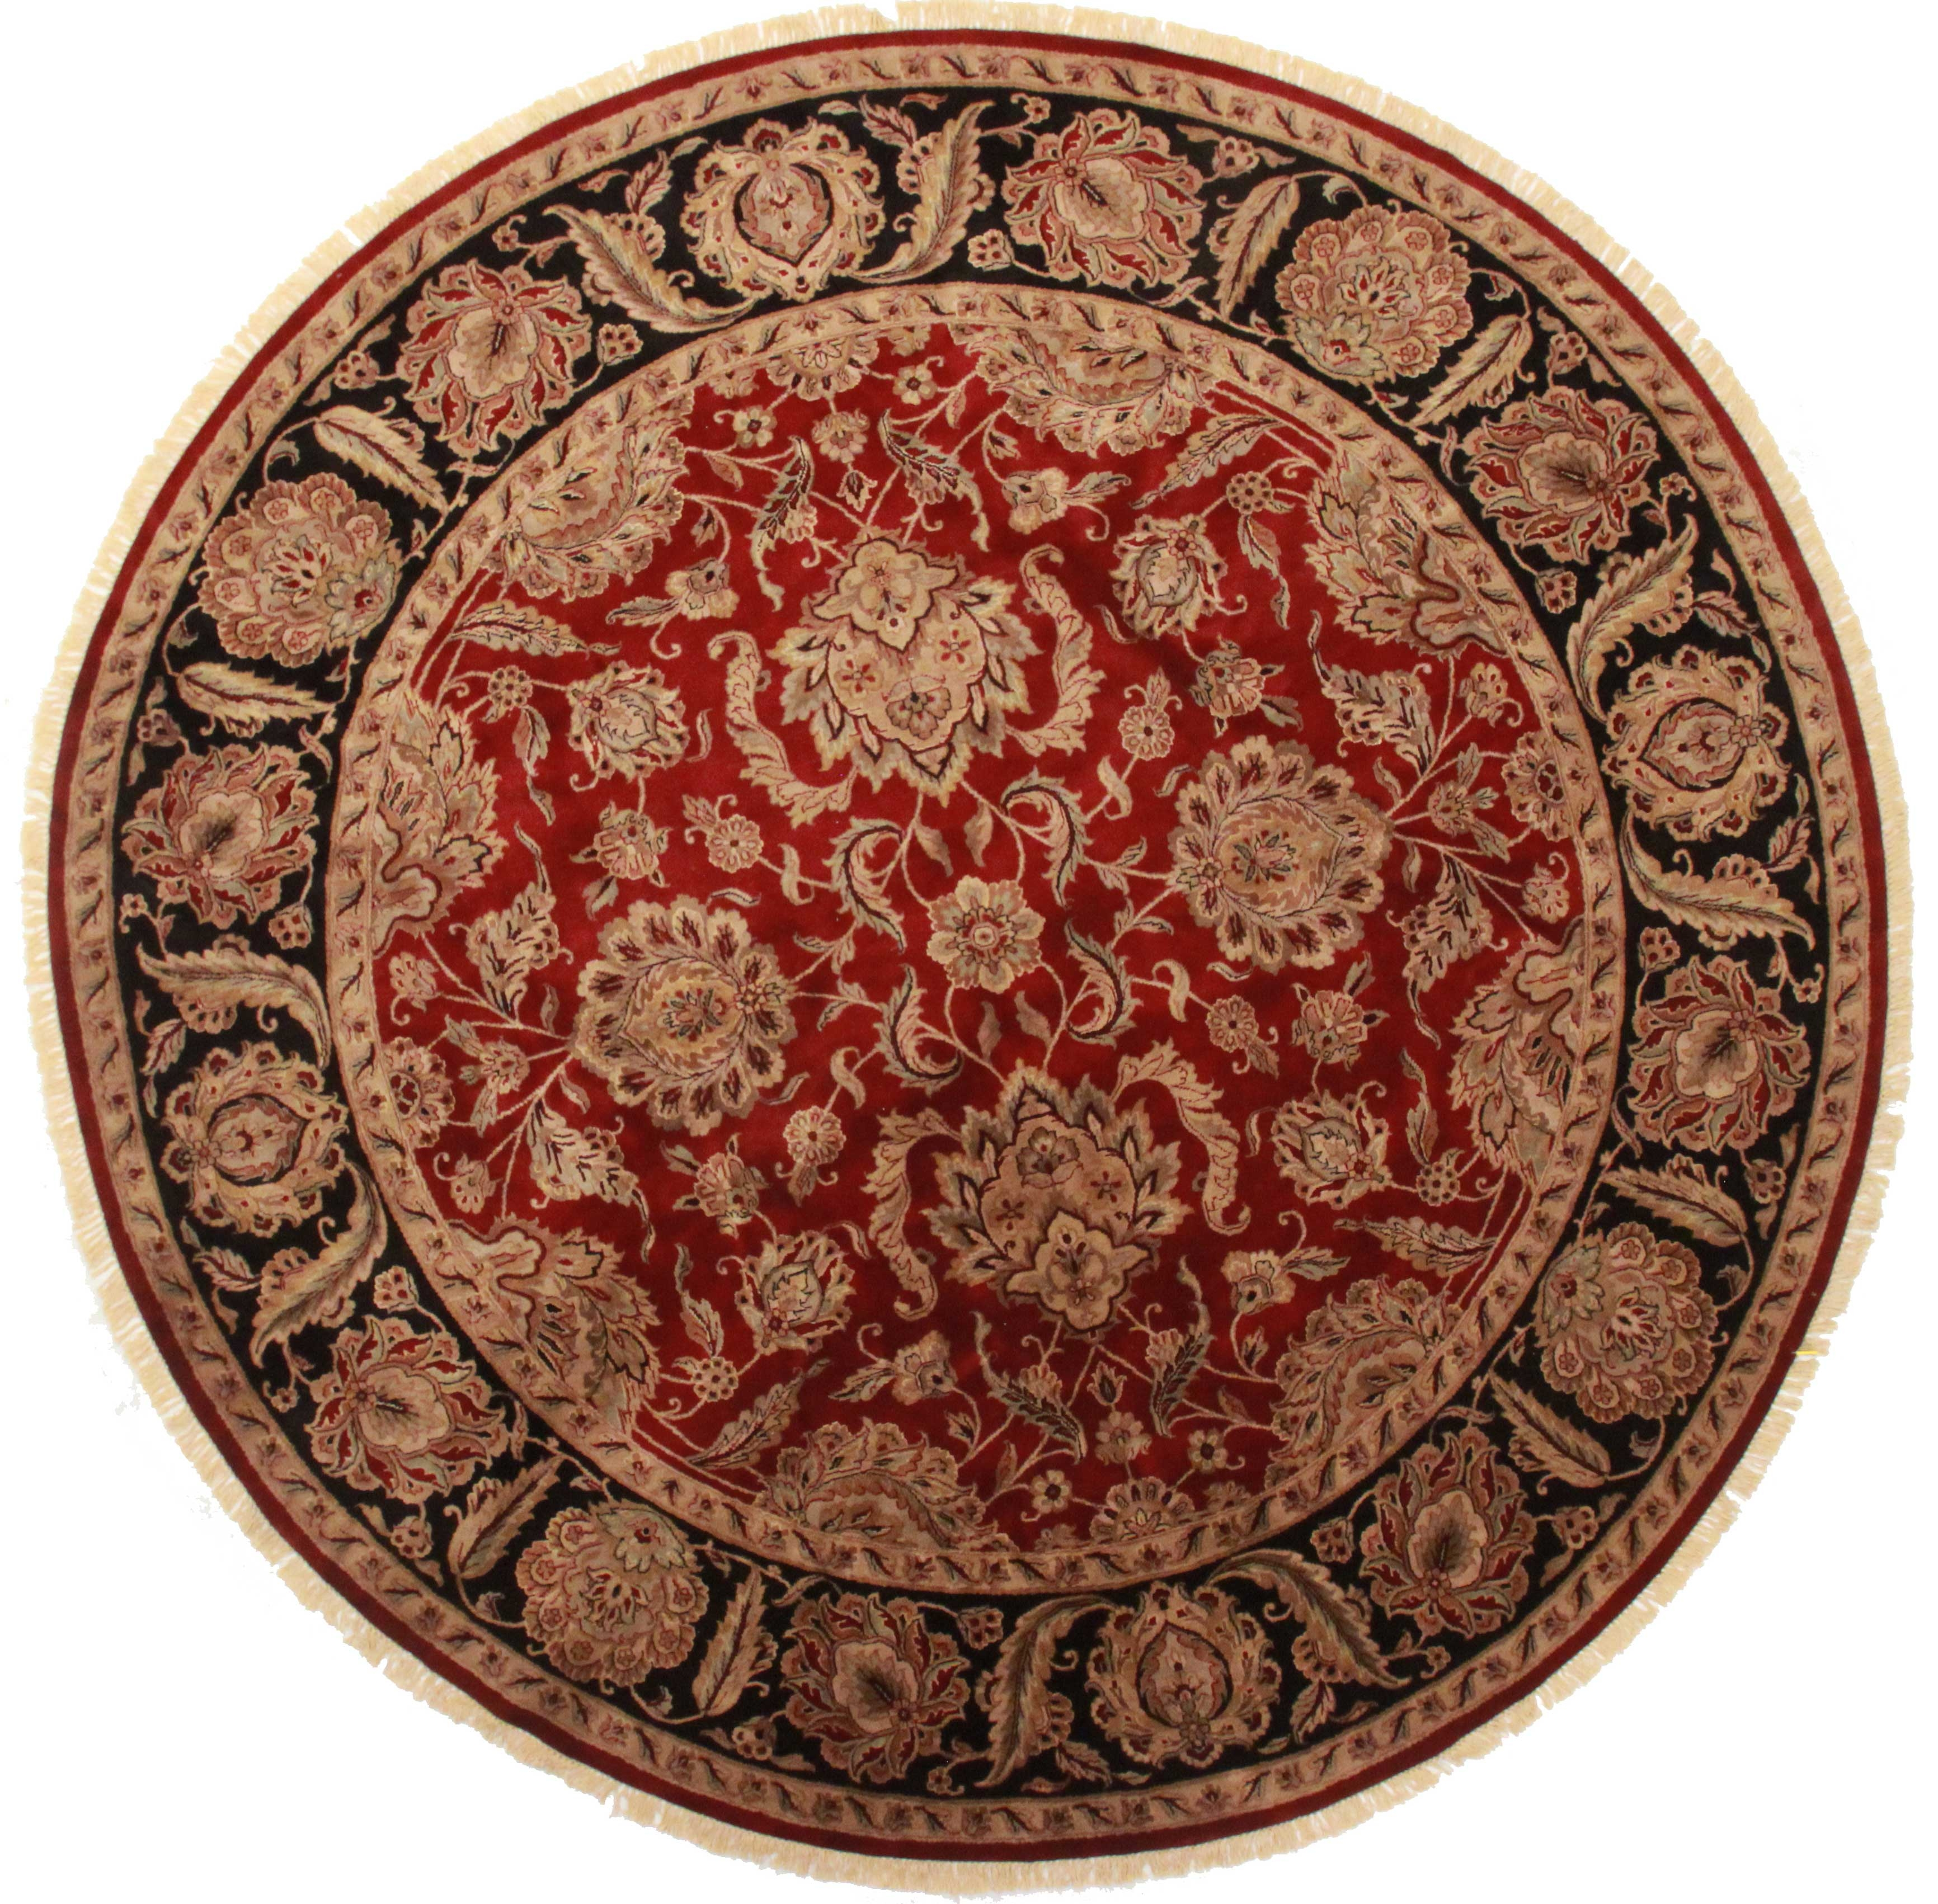 12 Feet Round Persian Design Rug 13746 Exclusive Oriental Rugs With Round Persian Rugs (Image 1 of 15)